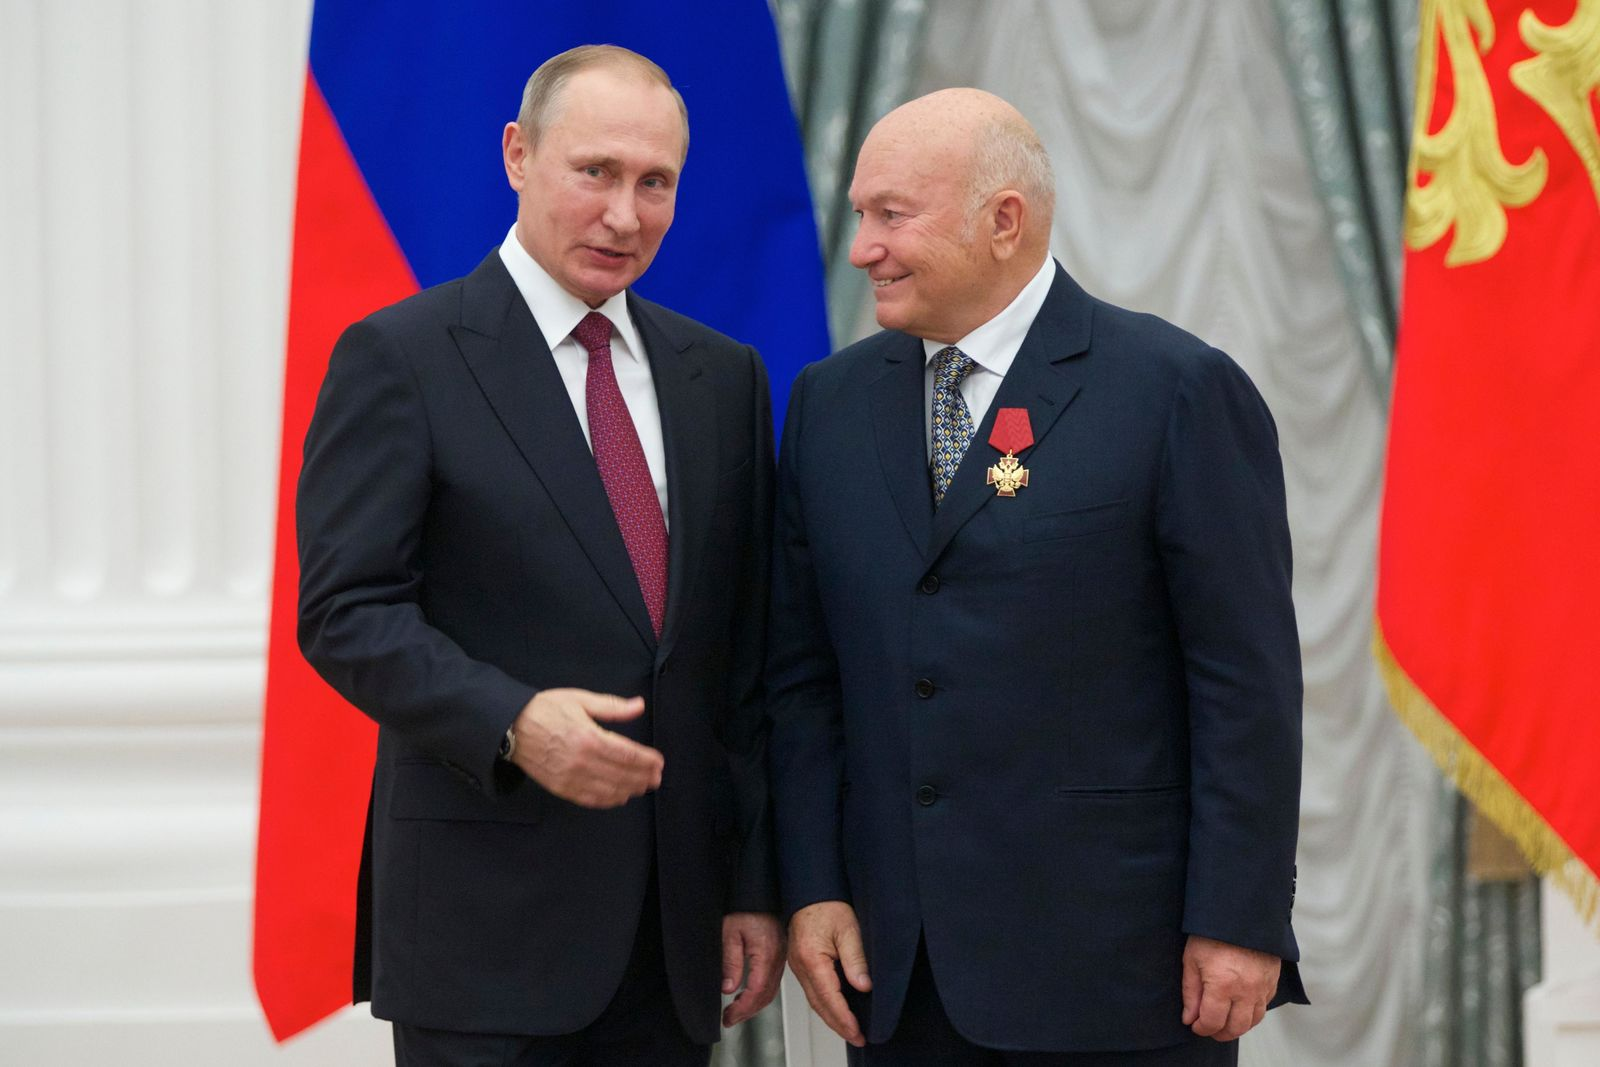 FILE - In this Thursday, Sept. 22, 2016 file photo, Russian President Vladimir Putin, left, presents a medal to former Moscow Mayor Yuri Luzhkov during an award ceremony in Moscow's Kremlin, Russia.{ } (AP Photo/Ivan Sekretarev, pool, FIle)